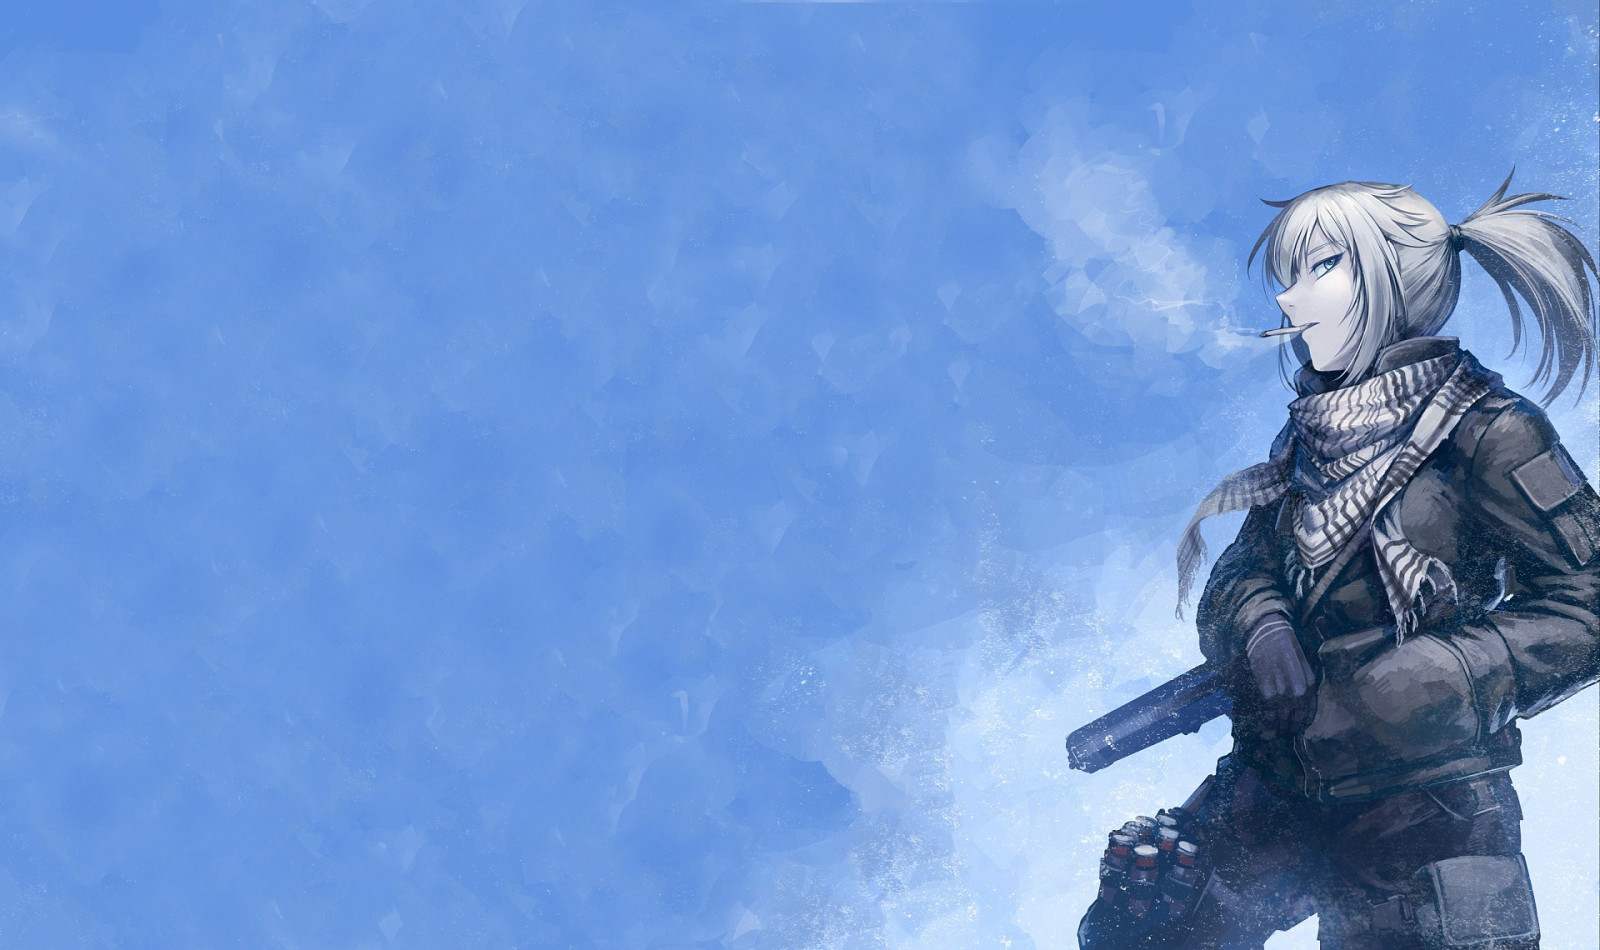 Wolfenstein The New Order Hd Wallpaper Wallpaper Gun Anime Girls Sky Smoking Blue Statue